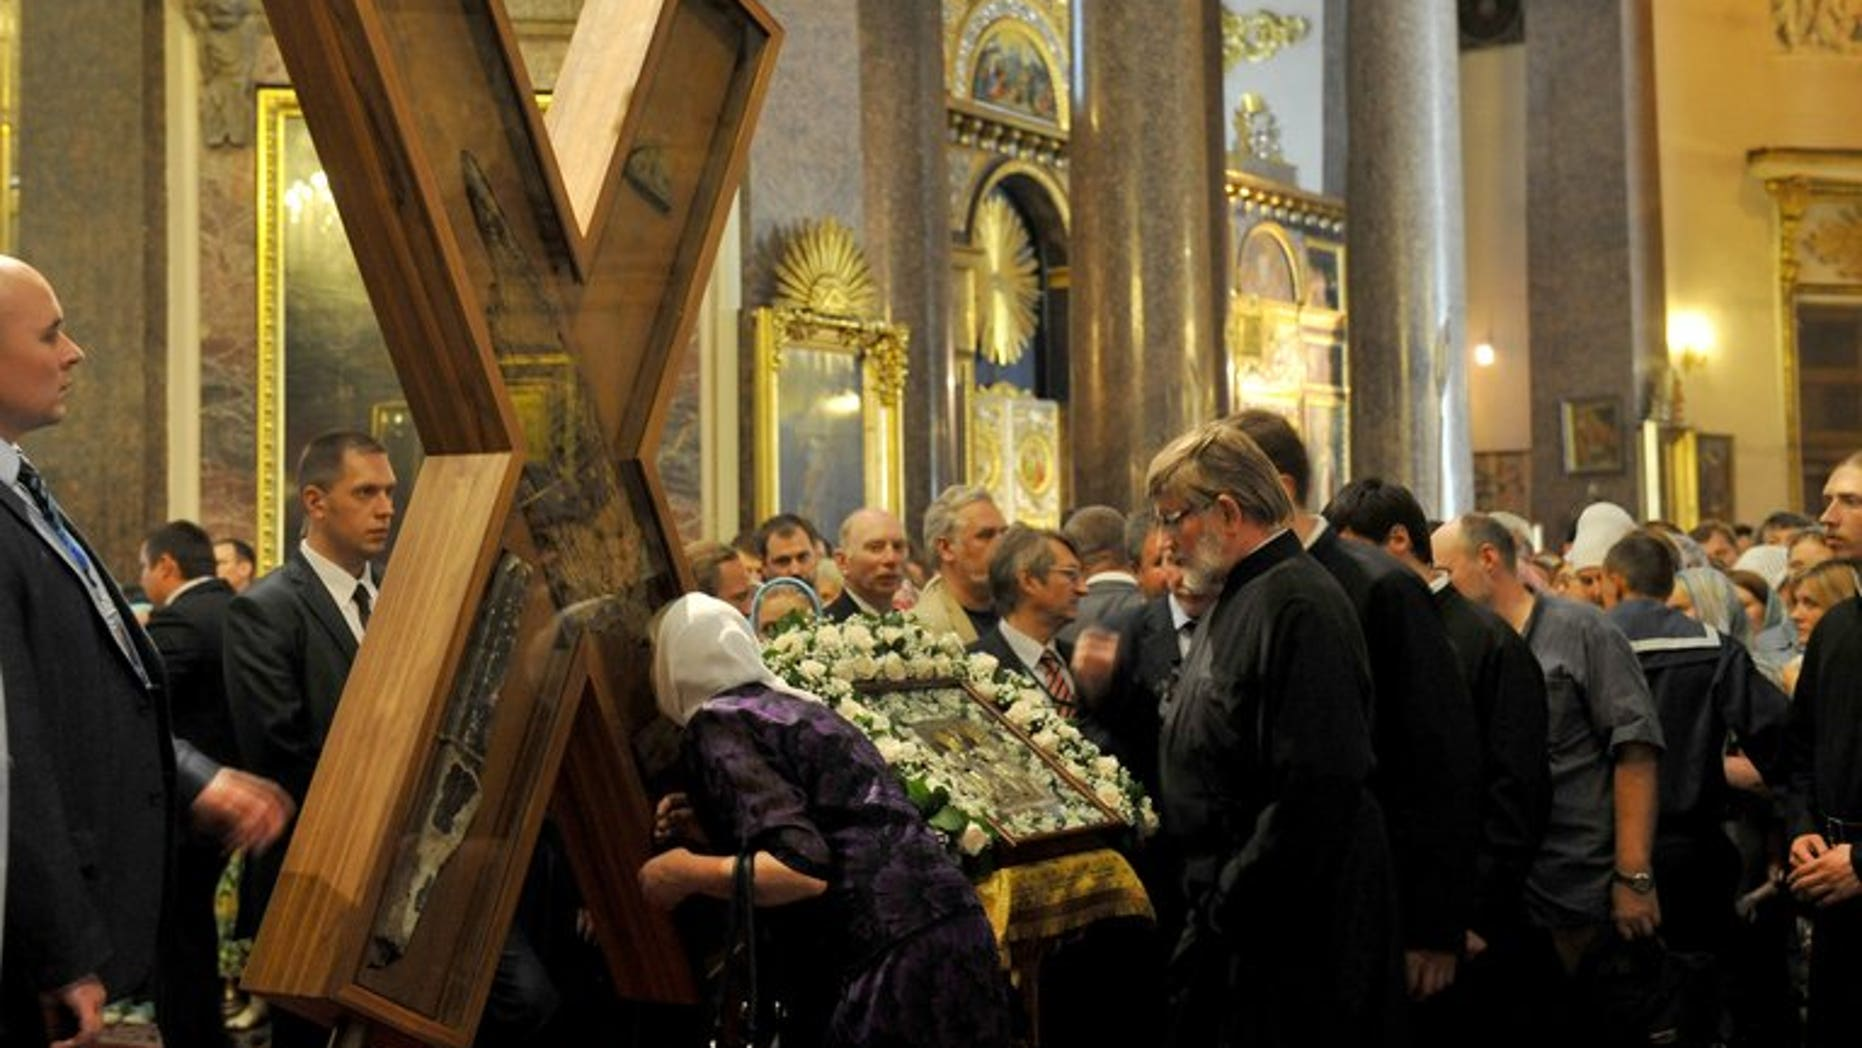 An Orthodox worshipper kisses the cross of Saint Andrew durng a ceremony at Kazan Cathedral in Saint Petersburg, on July 11, 2013. Around 65,000 people have queued for hours in Saint Petersburg to see a religious relic brought from Greece, in the latest sign of the Russian Orthodox Church's influence in post-Soviet Russia.